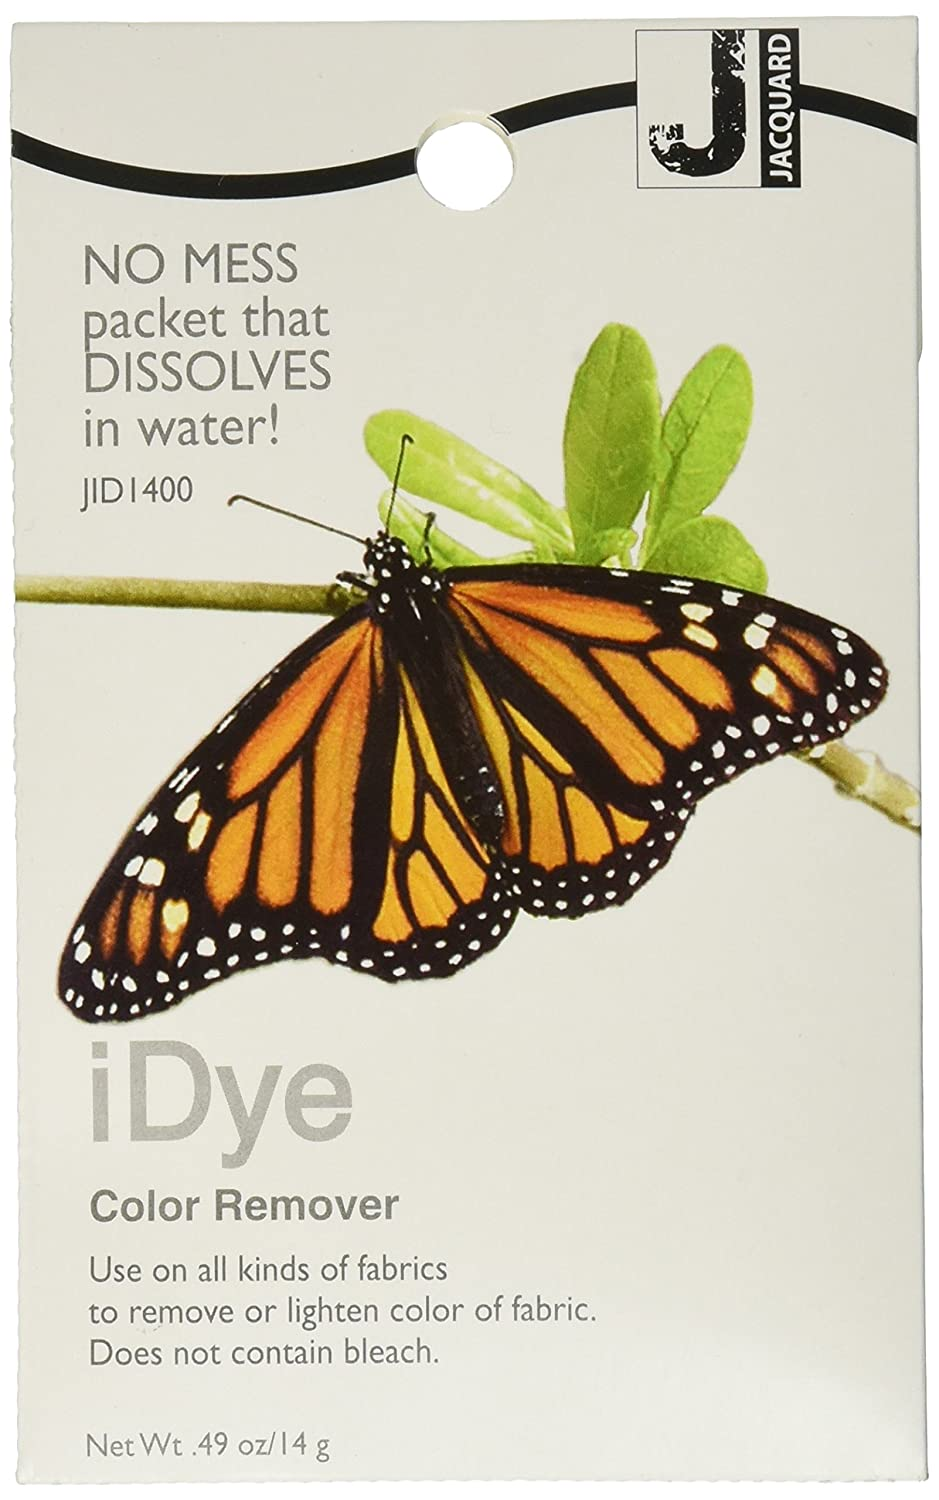 Jacquard iDye Color Remover 14g- Jacquard Products 400